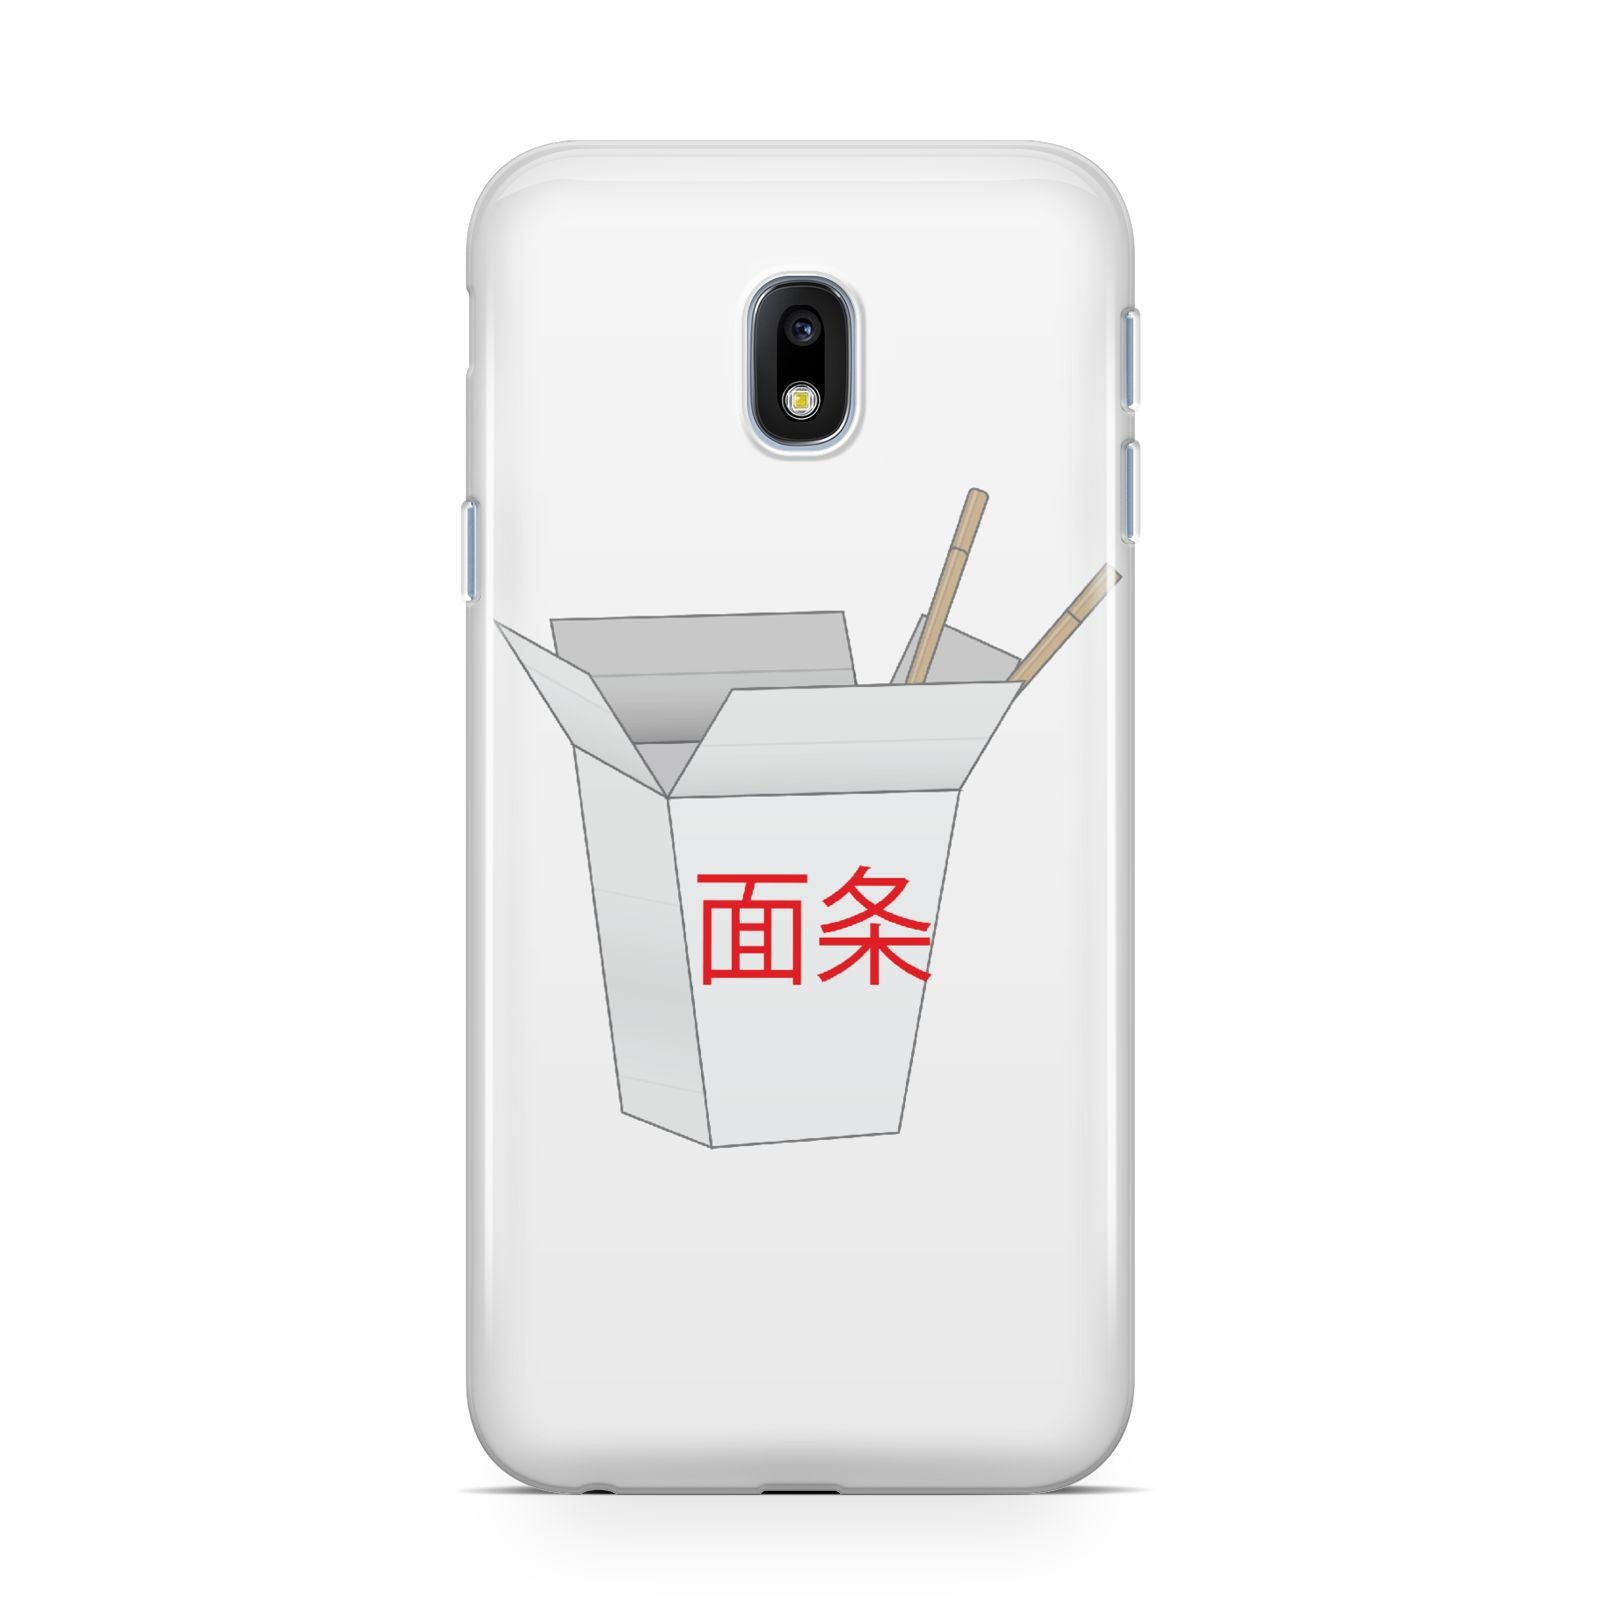 Chinese Takeaway Box Samsung Galaxy J3 2017 Case